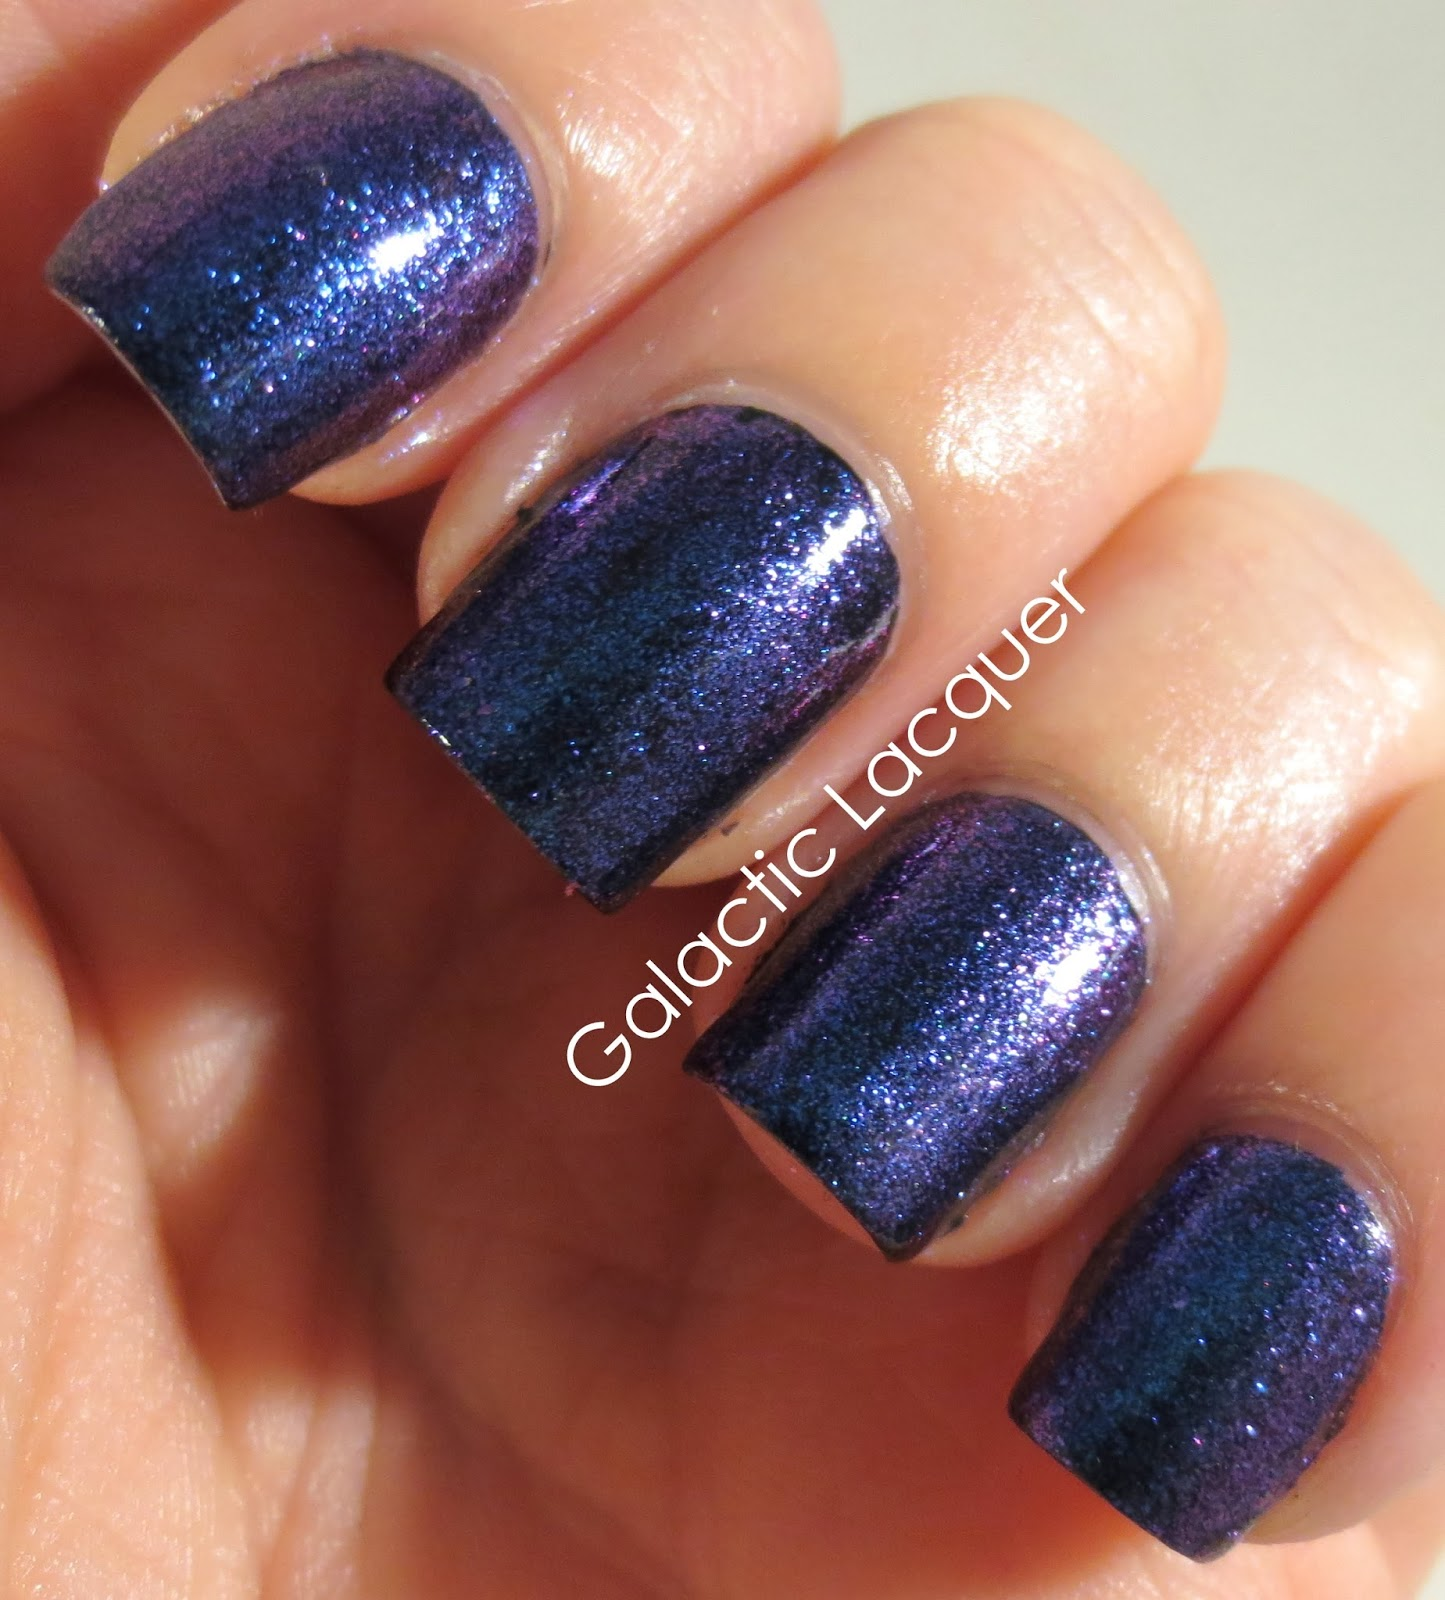 Galactic Lacquer: December 2013